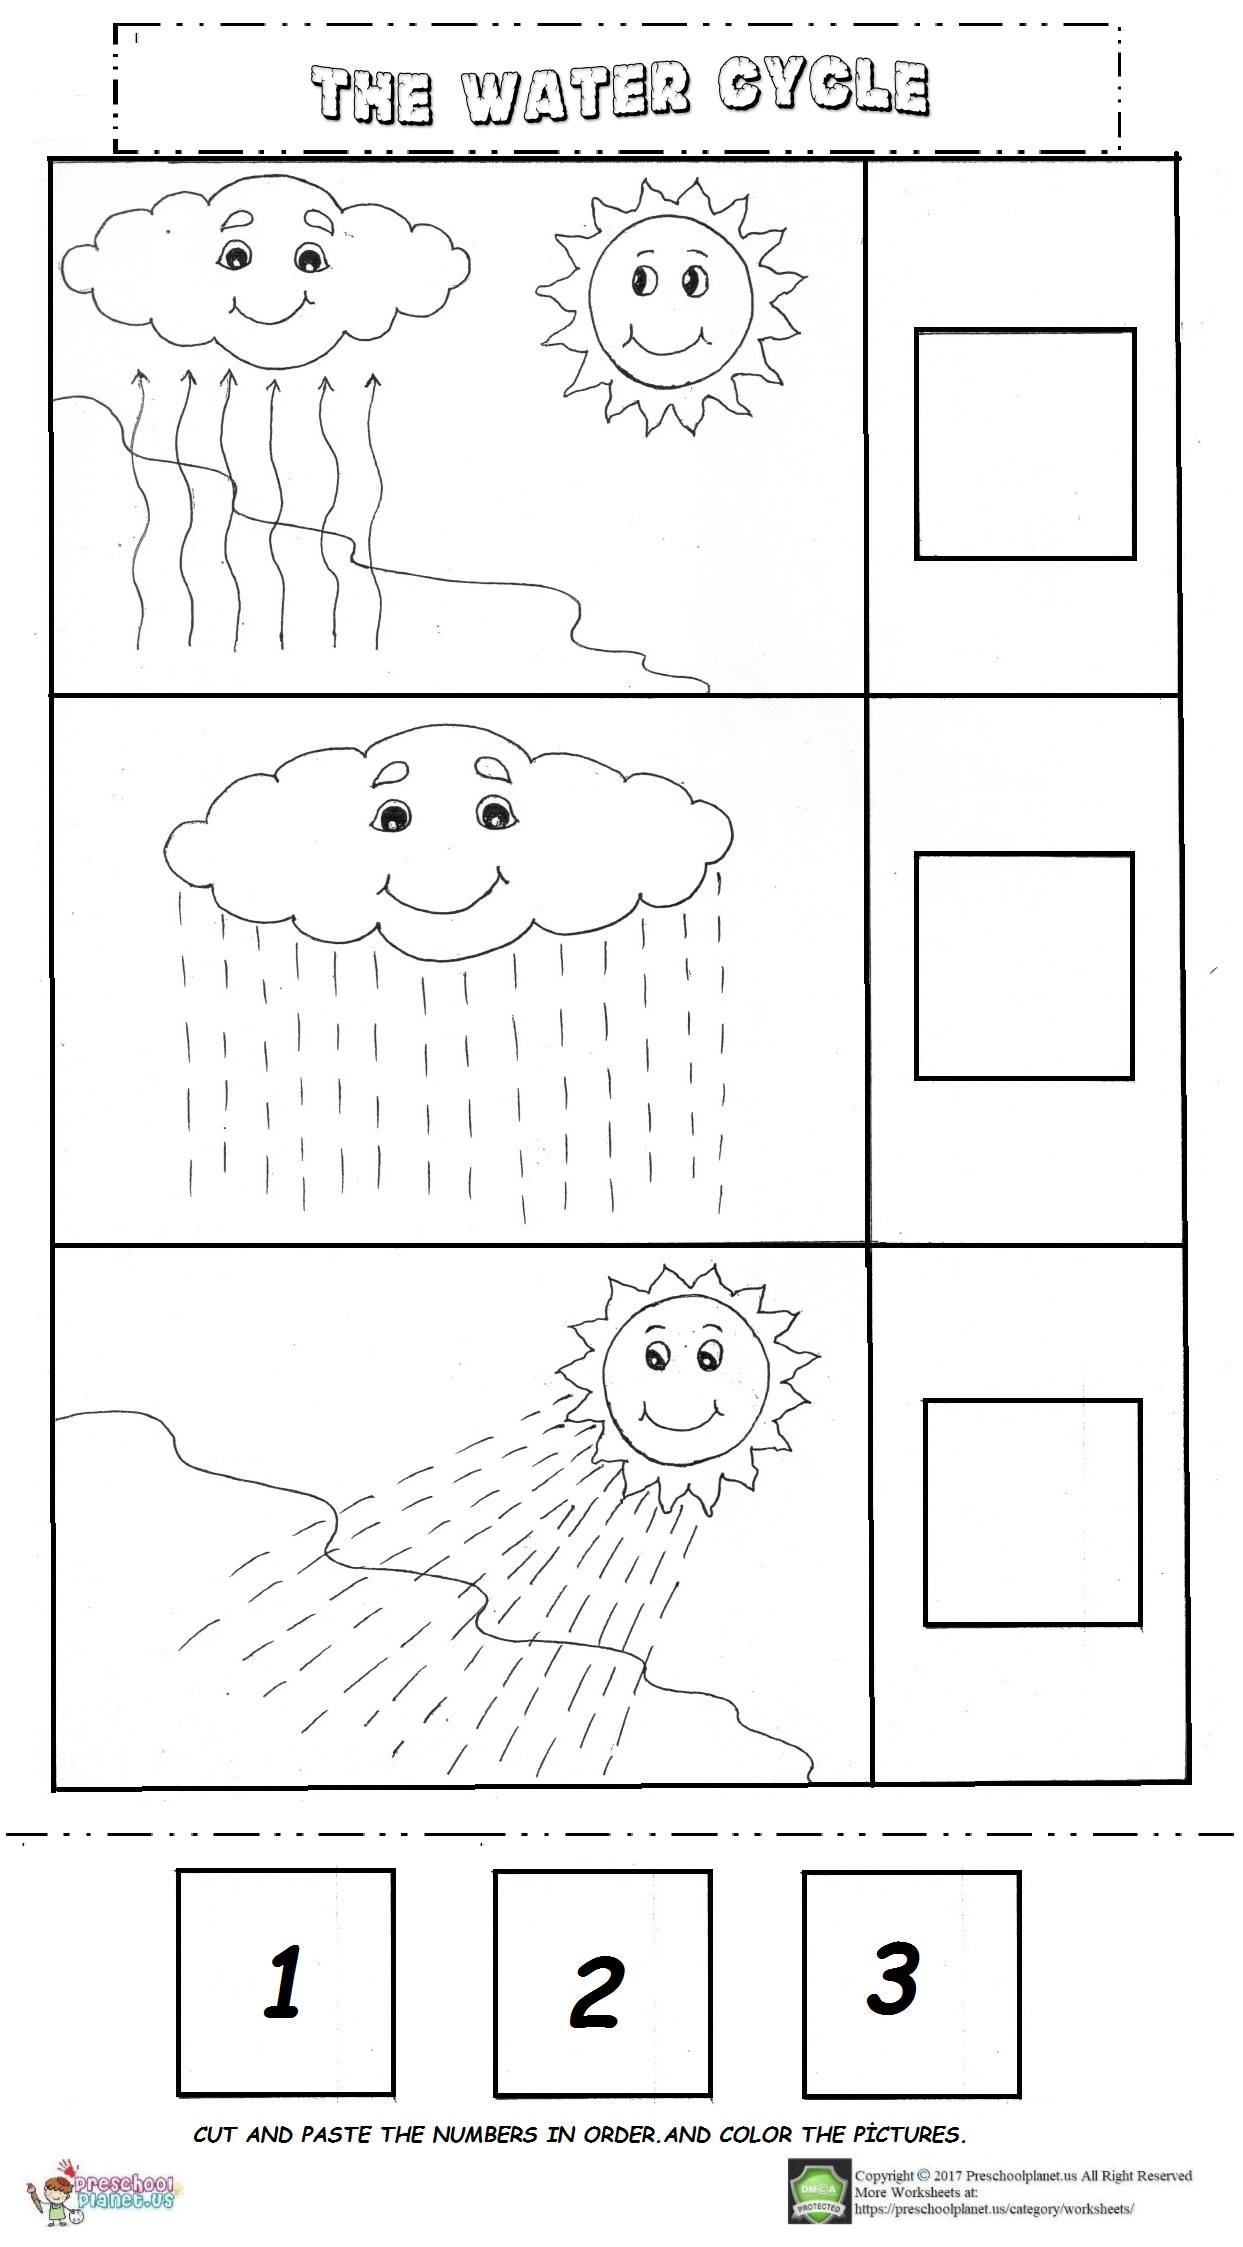 the water cycle worksheet